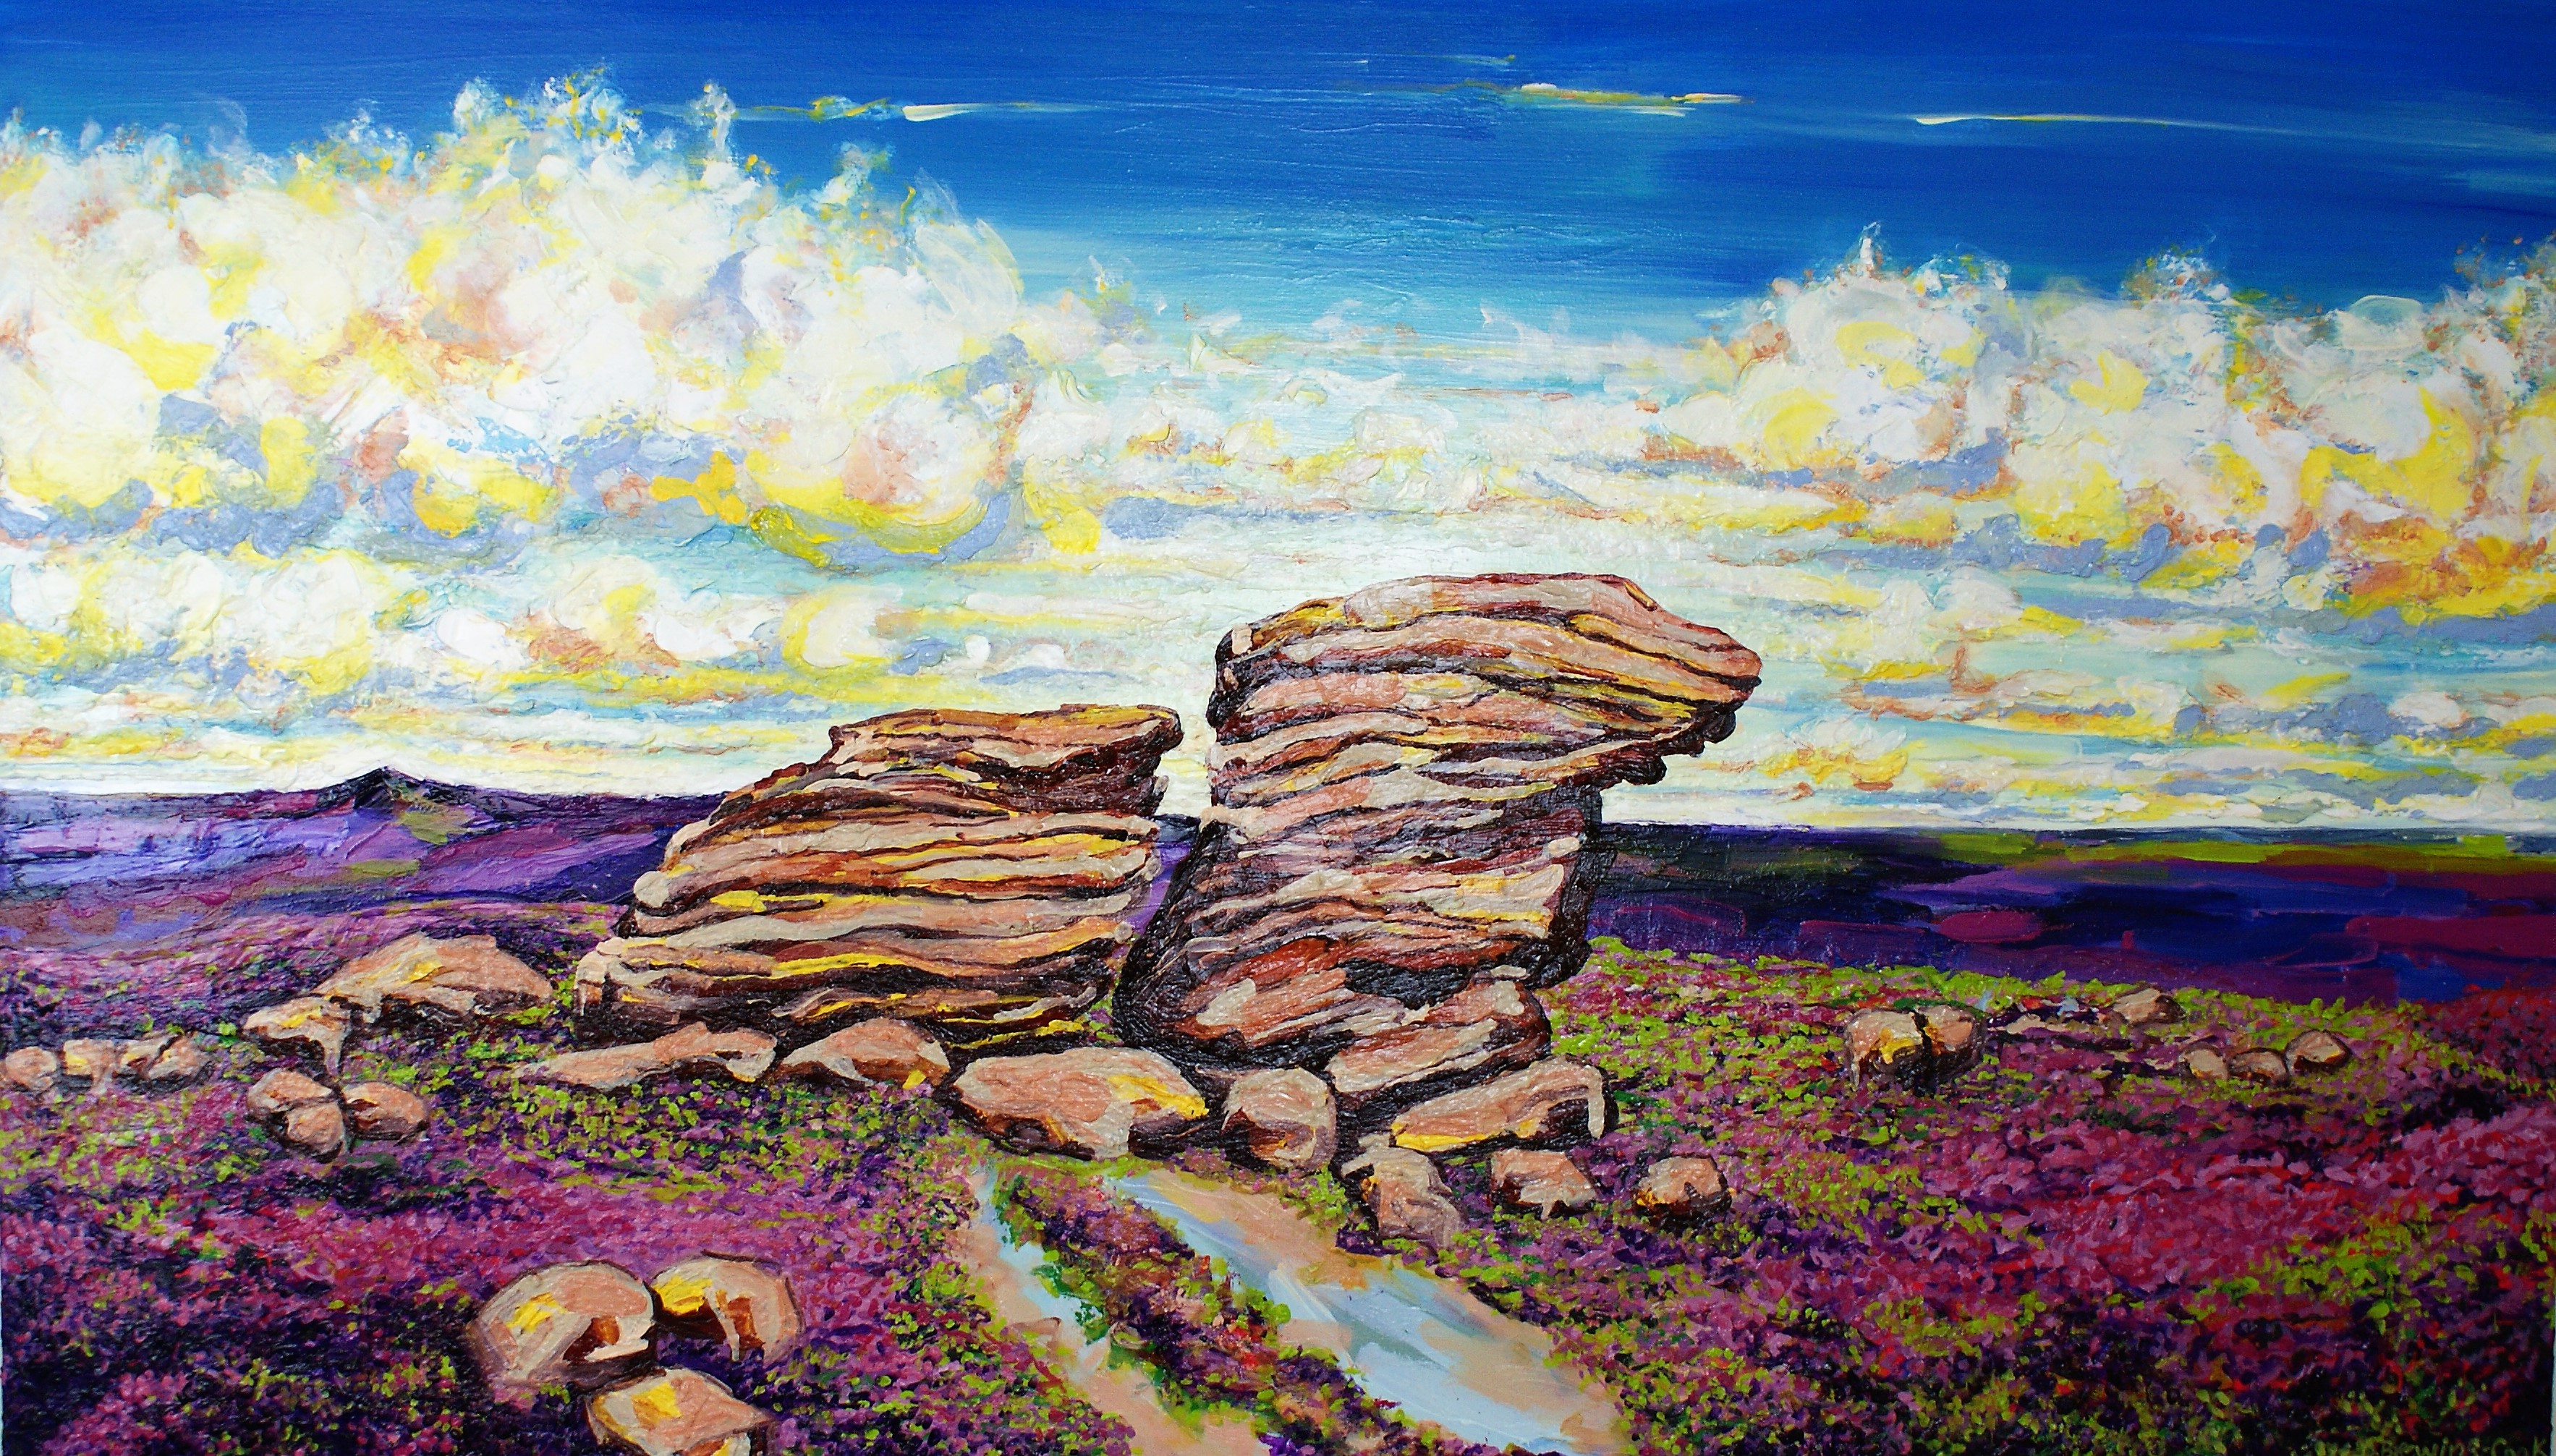 High Summer – Ox Stones in the morning light, clouds dance with the purple heather - 170x100cm (oil on canvas) 2021, Private Commission & Collection